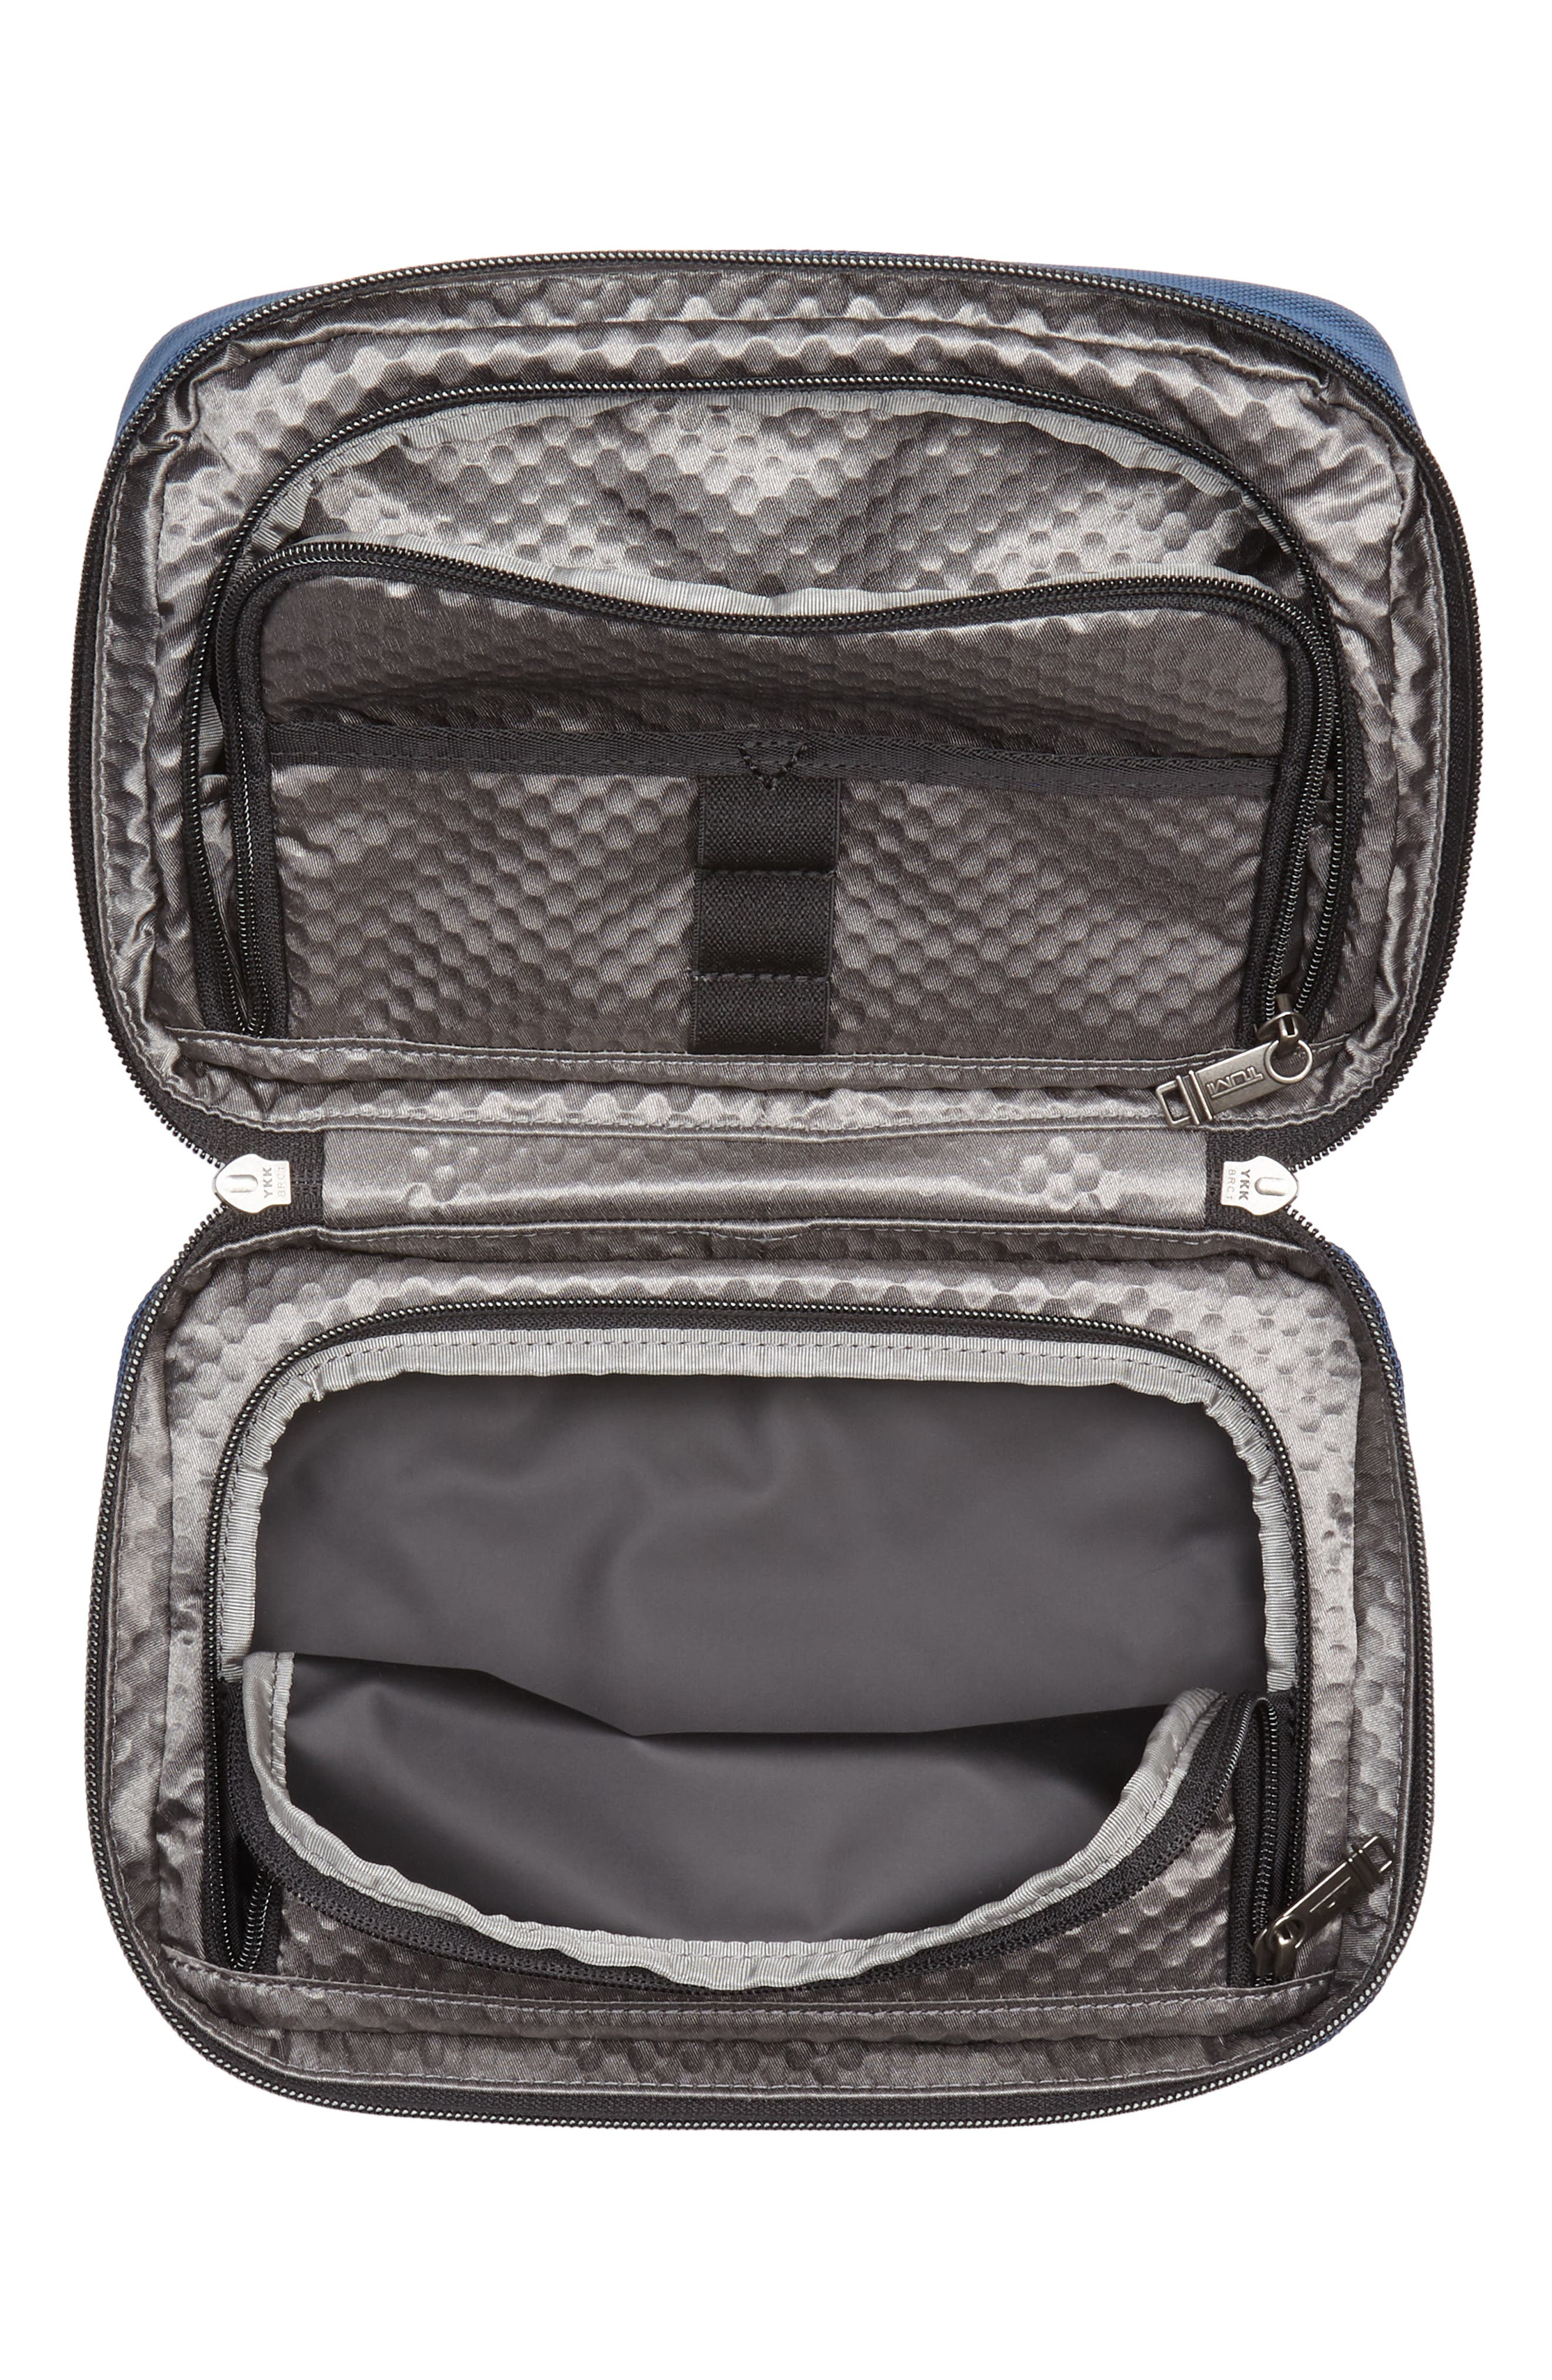 TUMI,                             Alpha Bravo - Reno Travel Kit,                             Alternate thumbnail 3, color,                             415